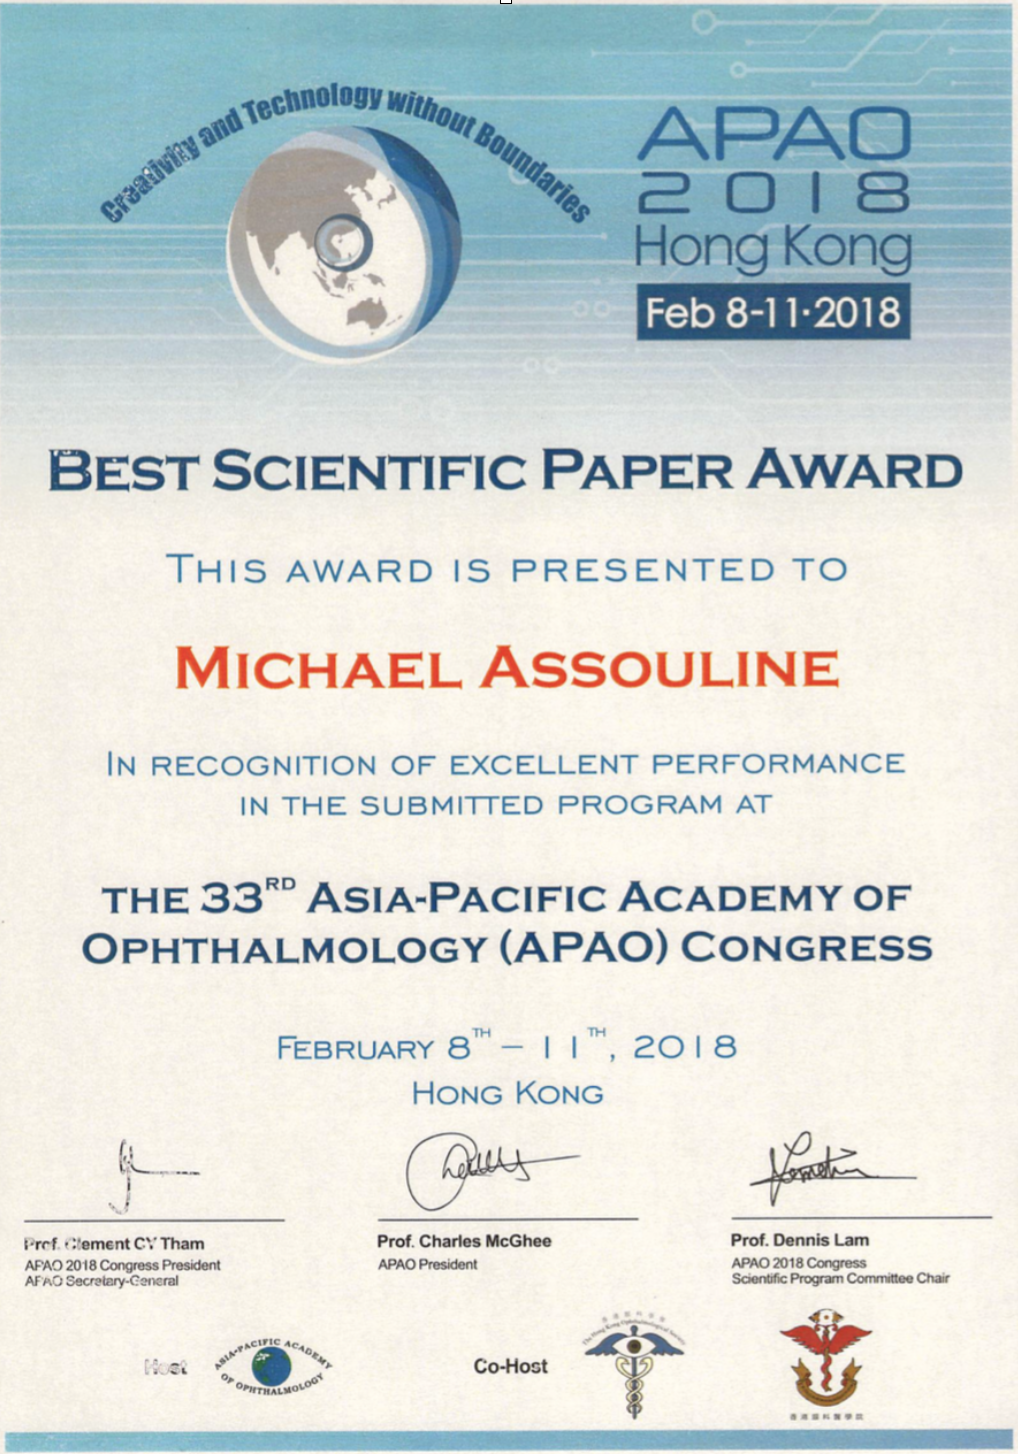 APAO 2018 Asia Pacific Academy of Ophtalmology